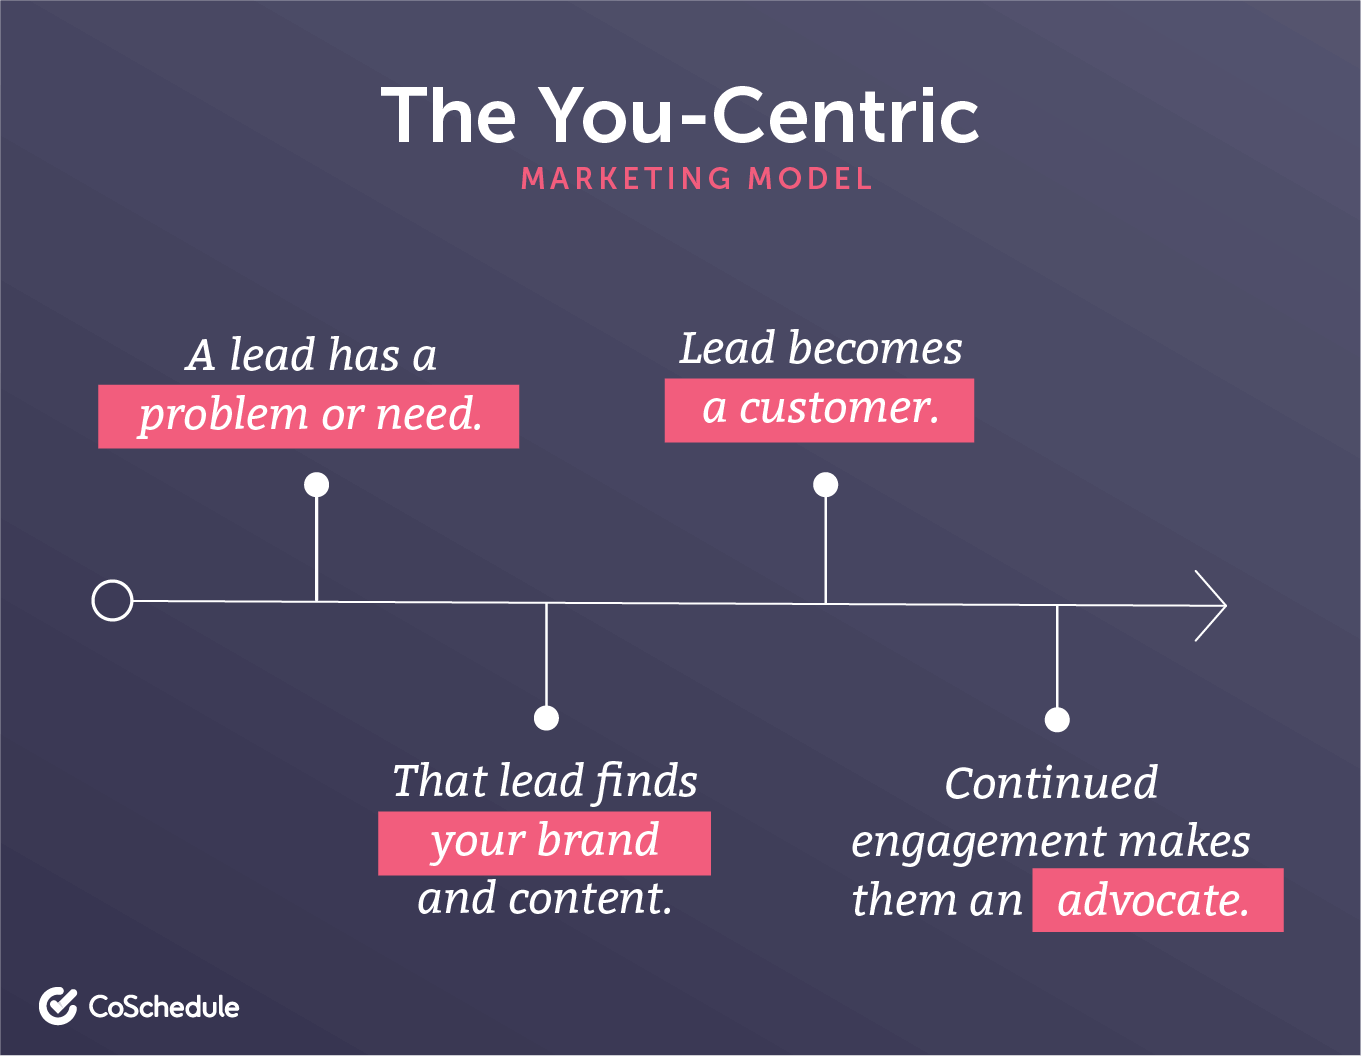 Example of the you-centric marketing model